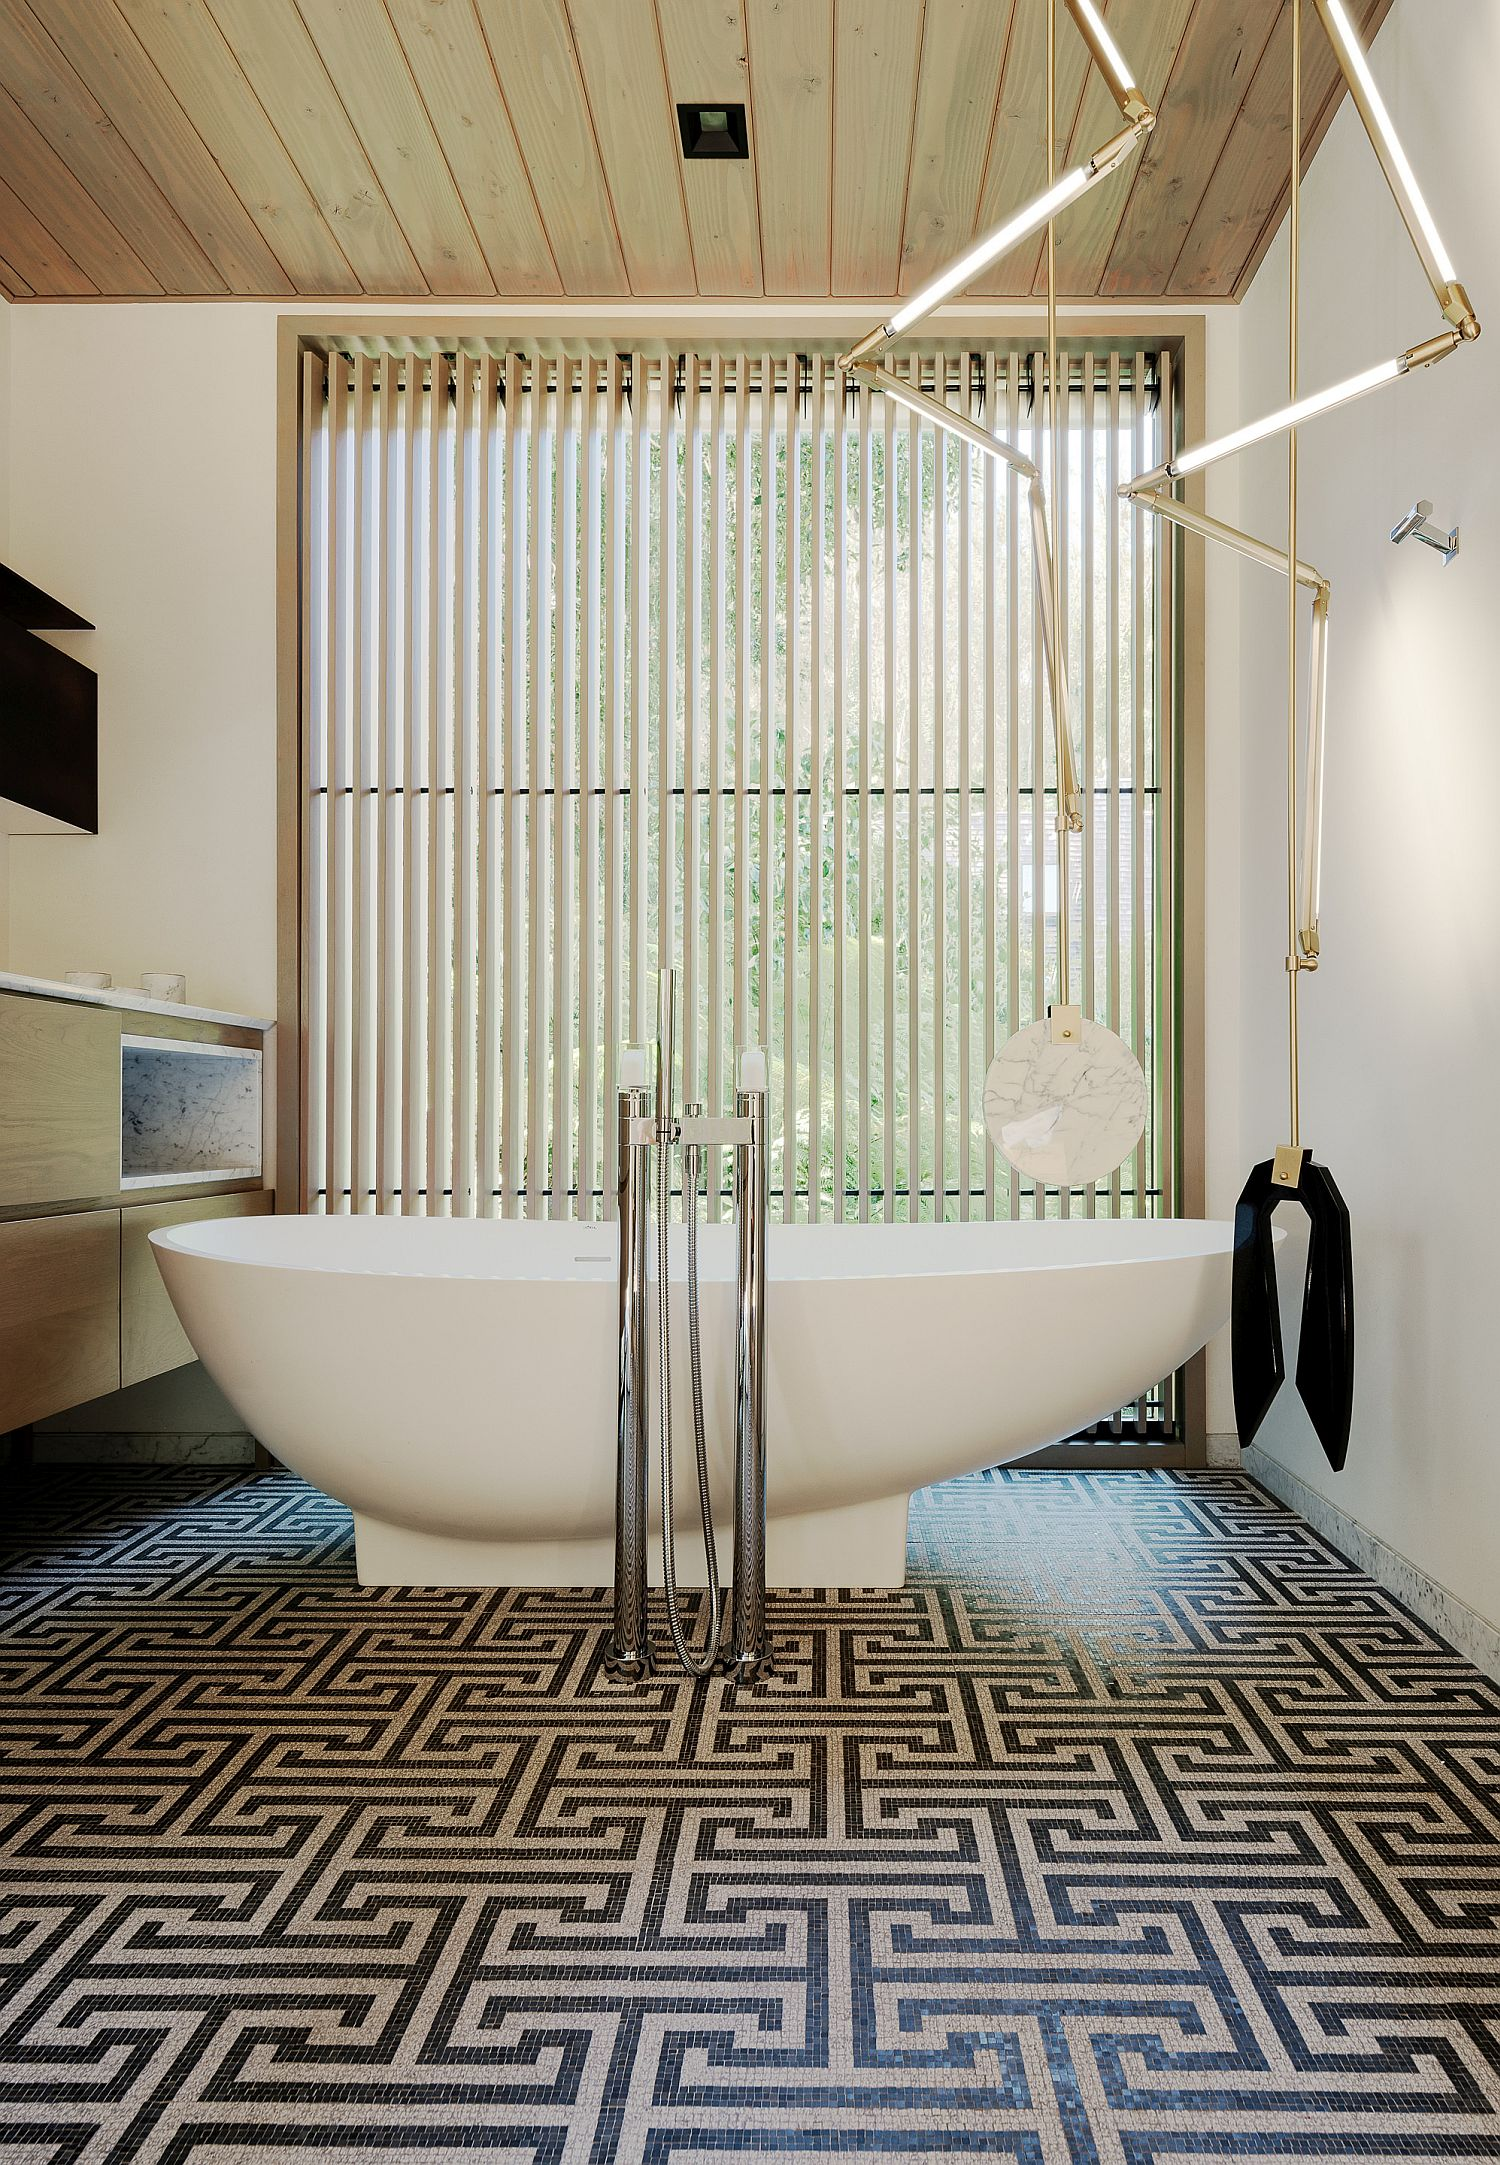 Bathroom in white with unique floor tiles and wooden ceiling